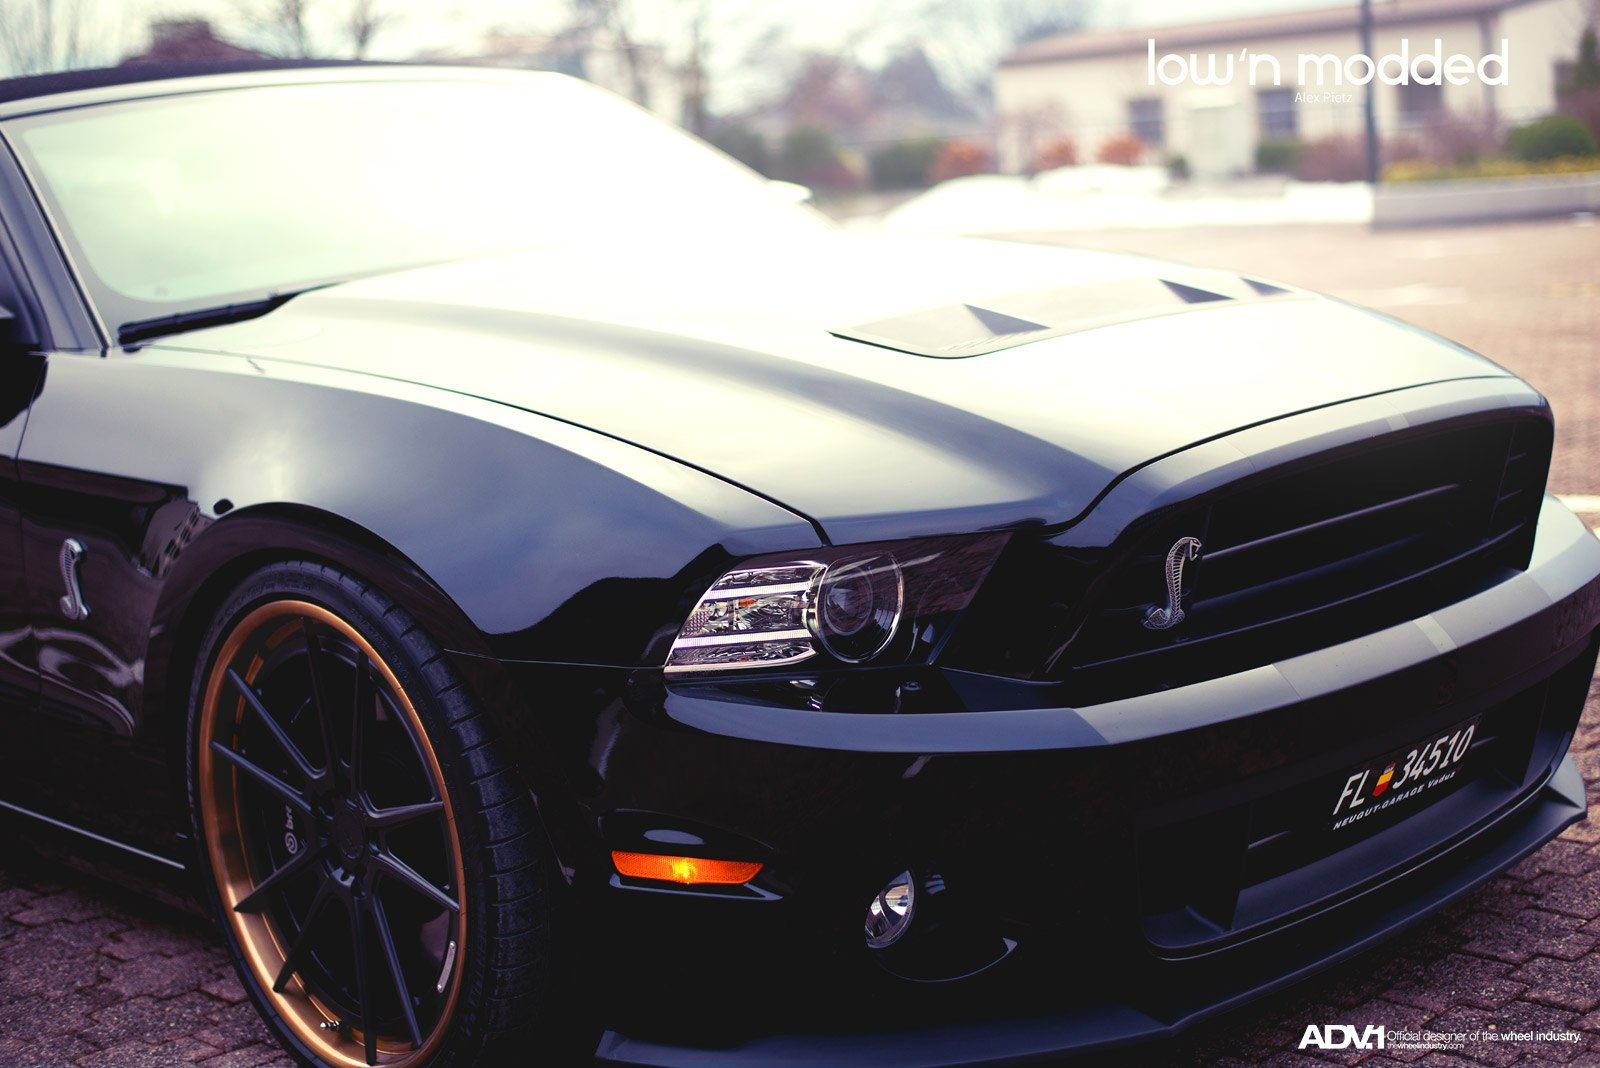 ADV1 Rims with Brembo Brakes on Black Ford Mustang - Photo by ADV.1